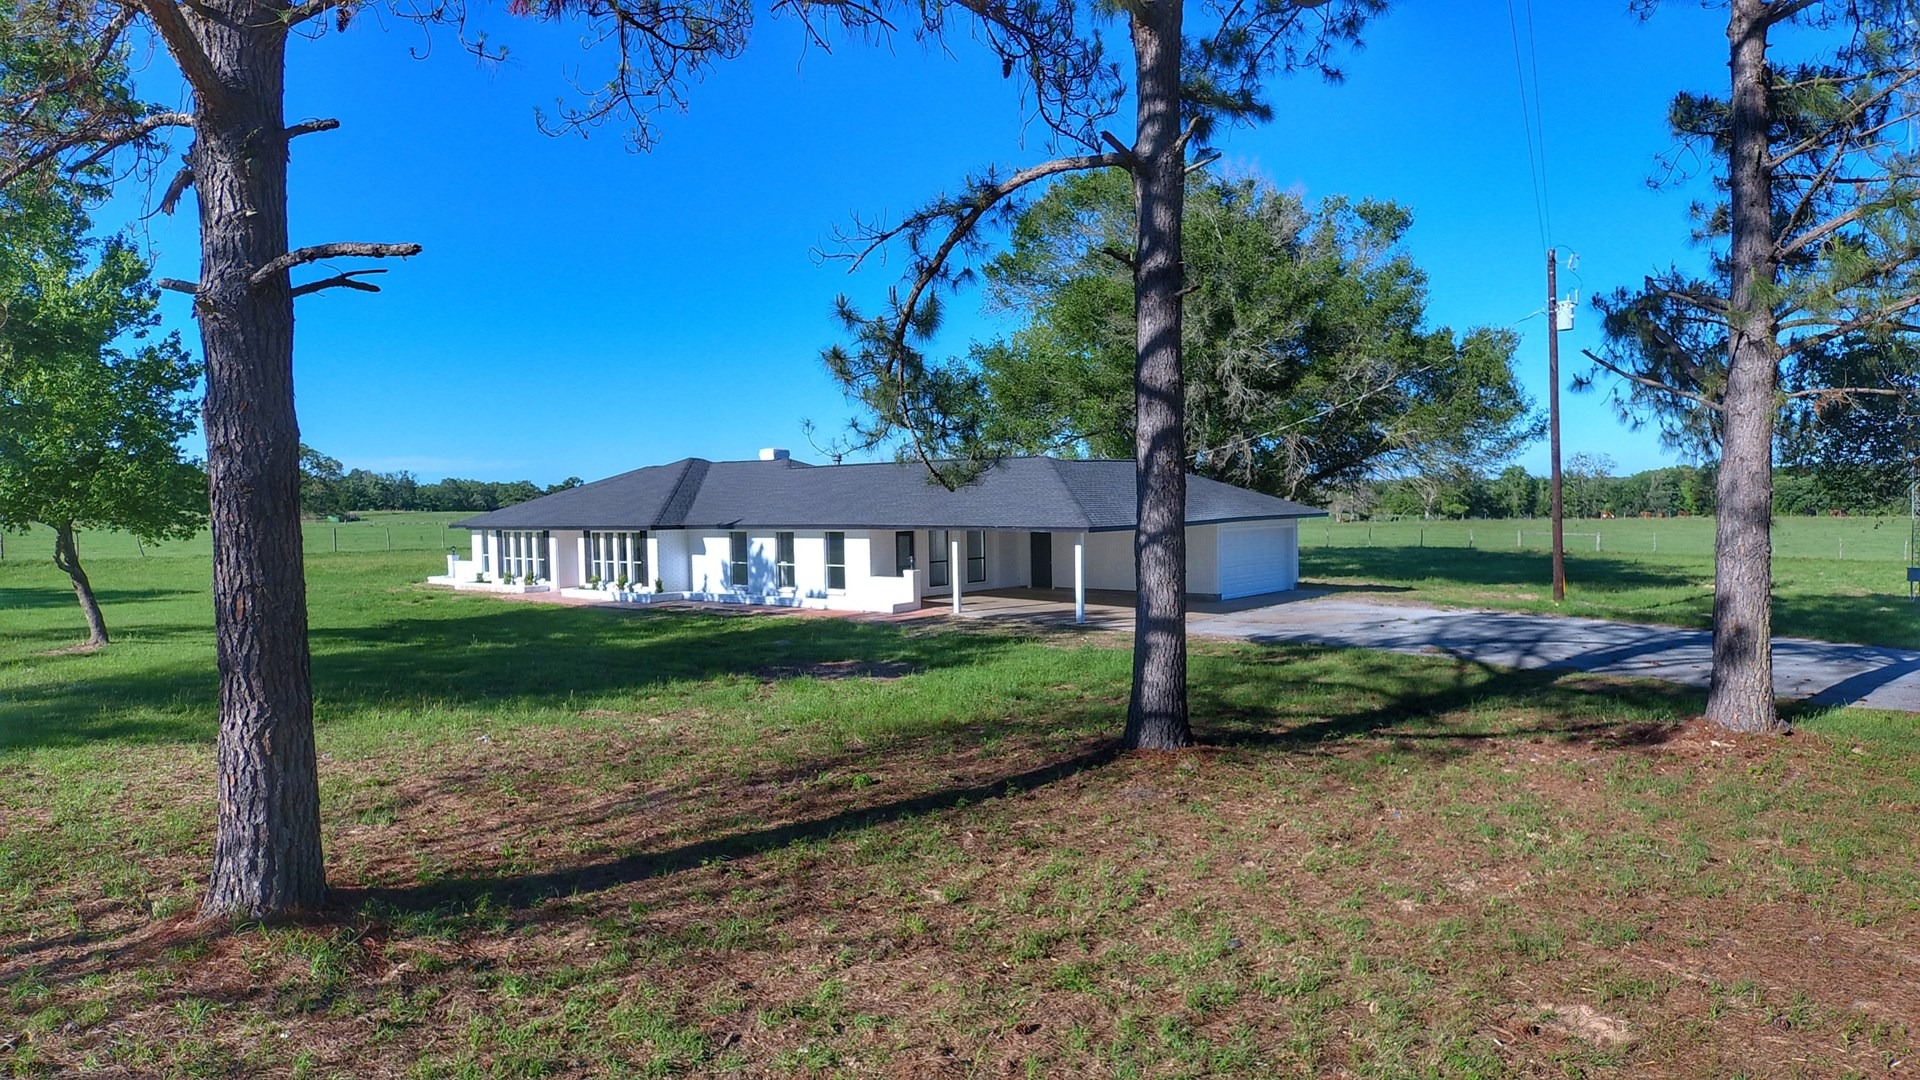 Country Home on Acreage For Sale in Buffalo Texas